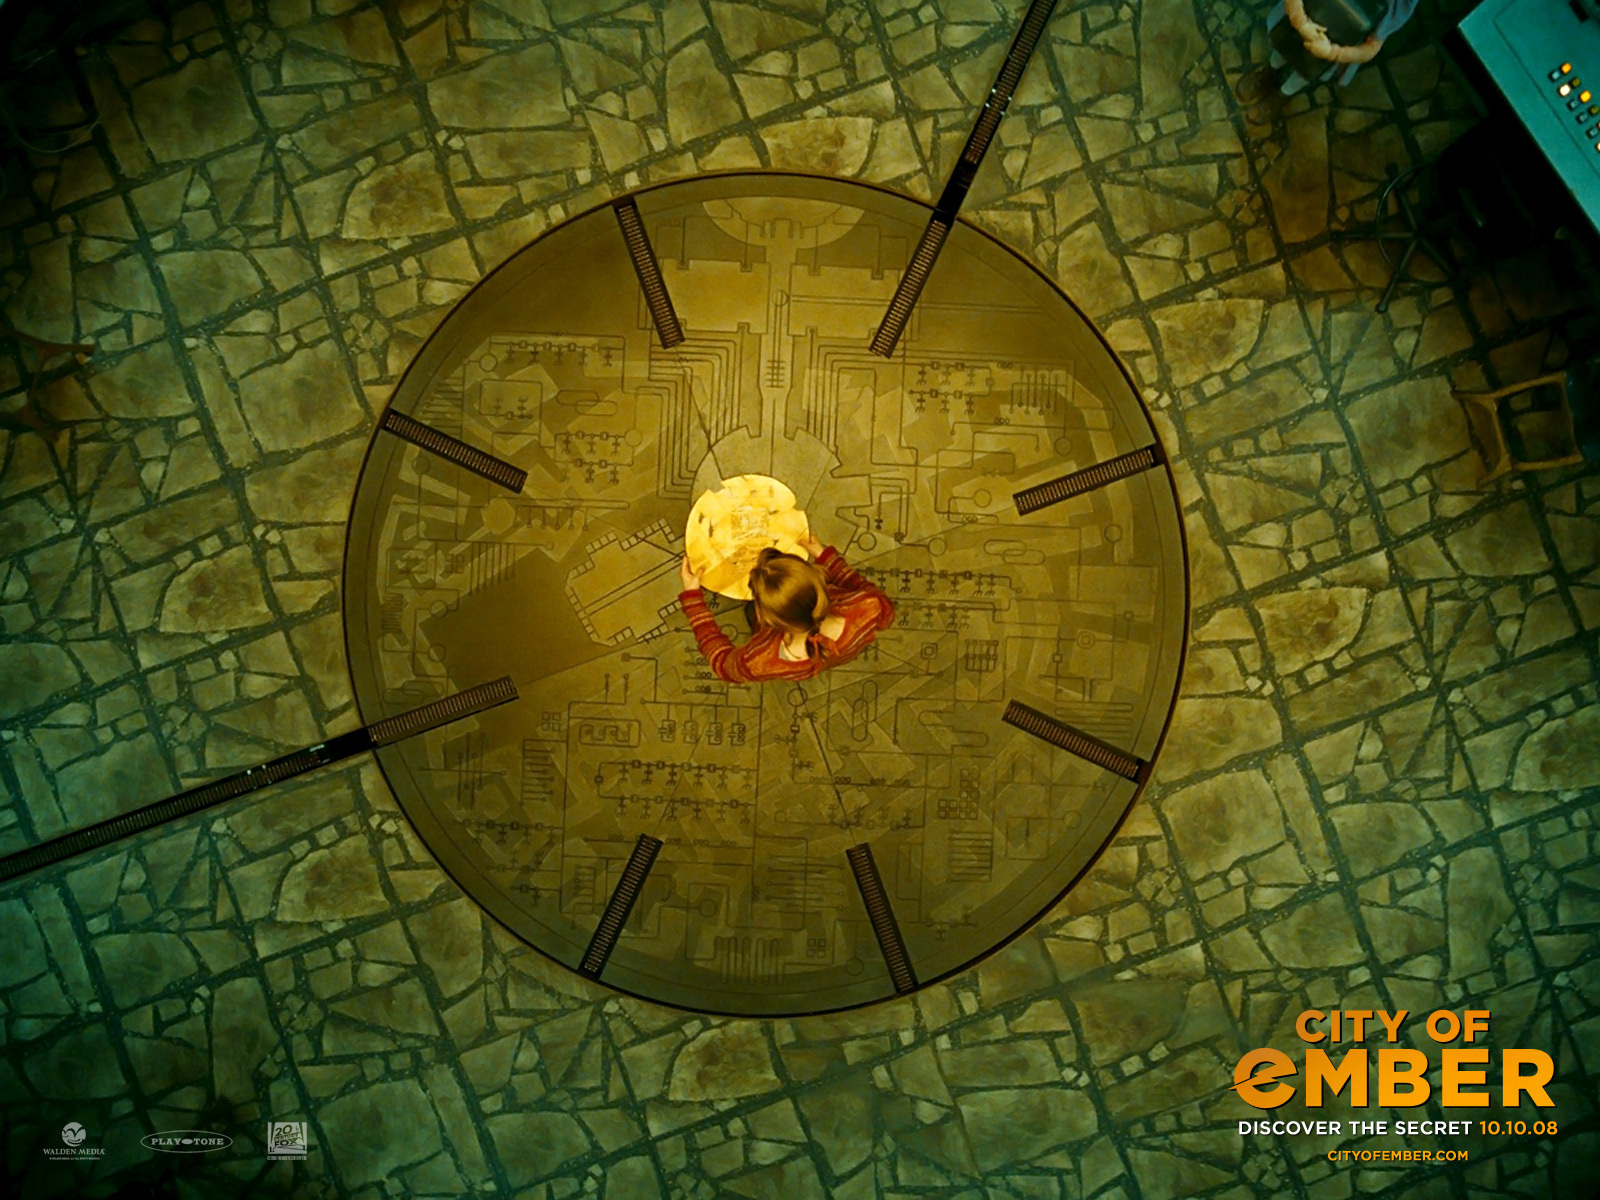 ember series images city of ember stills hd wallpaper and background